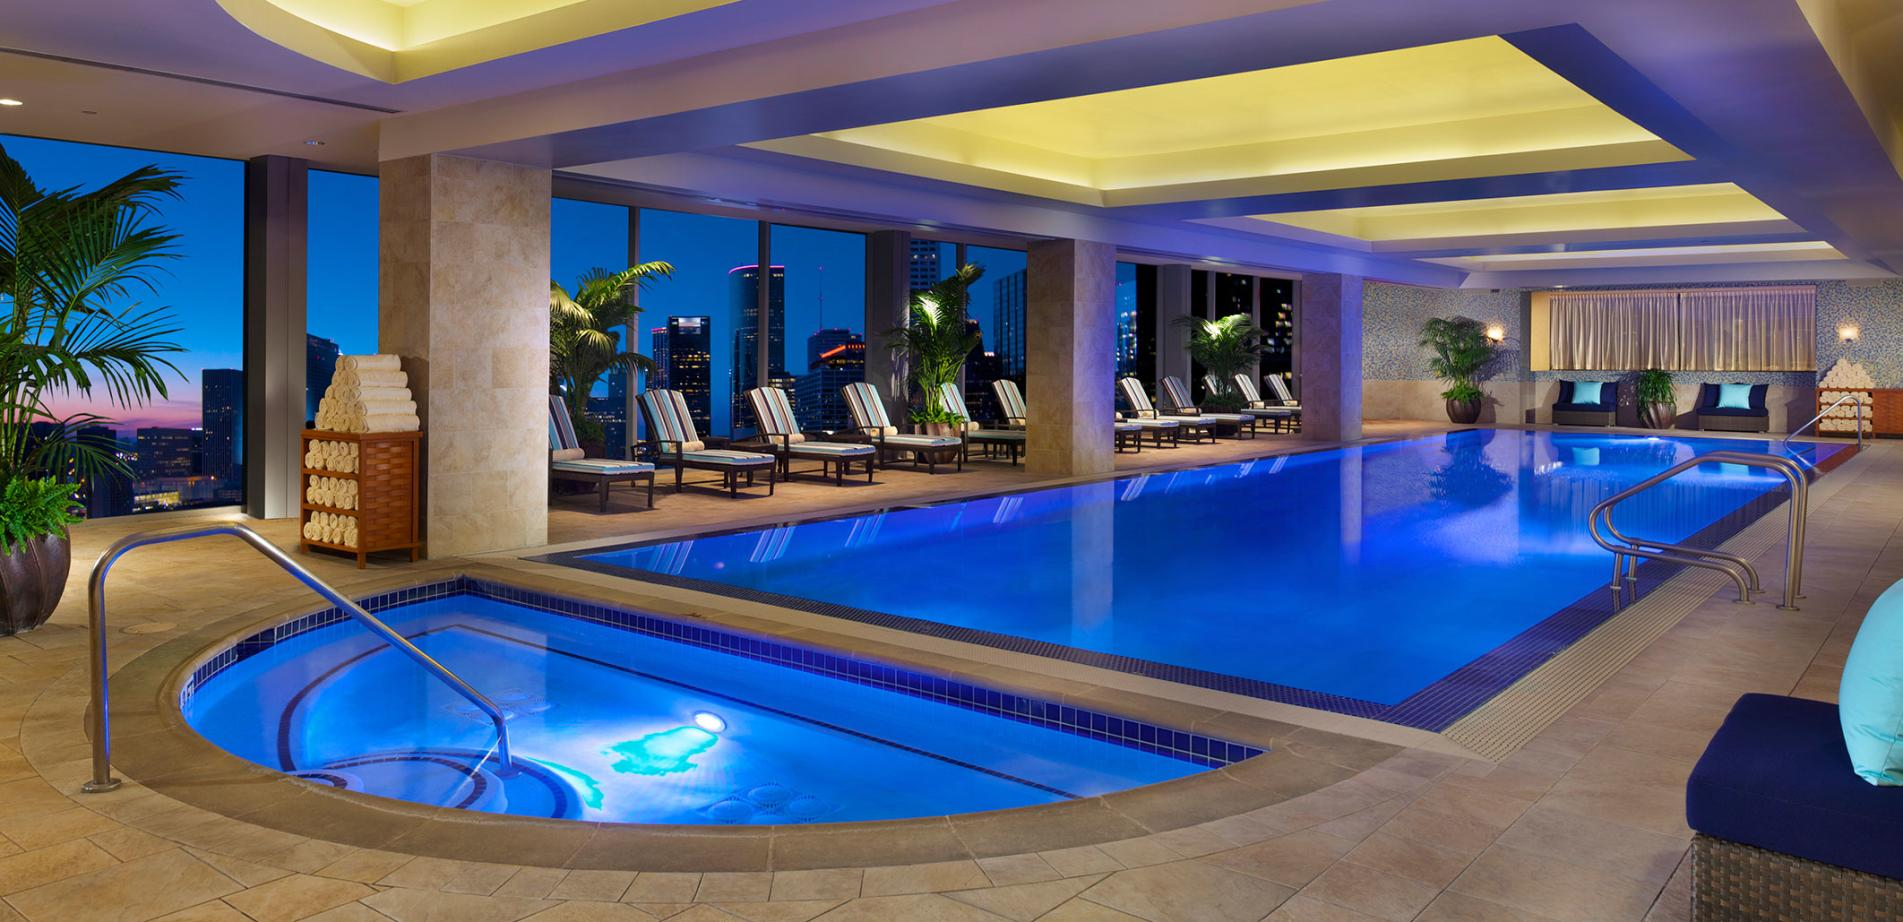 The Hilton Americas Rooftop Pool